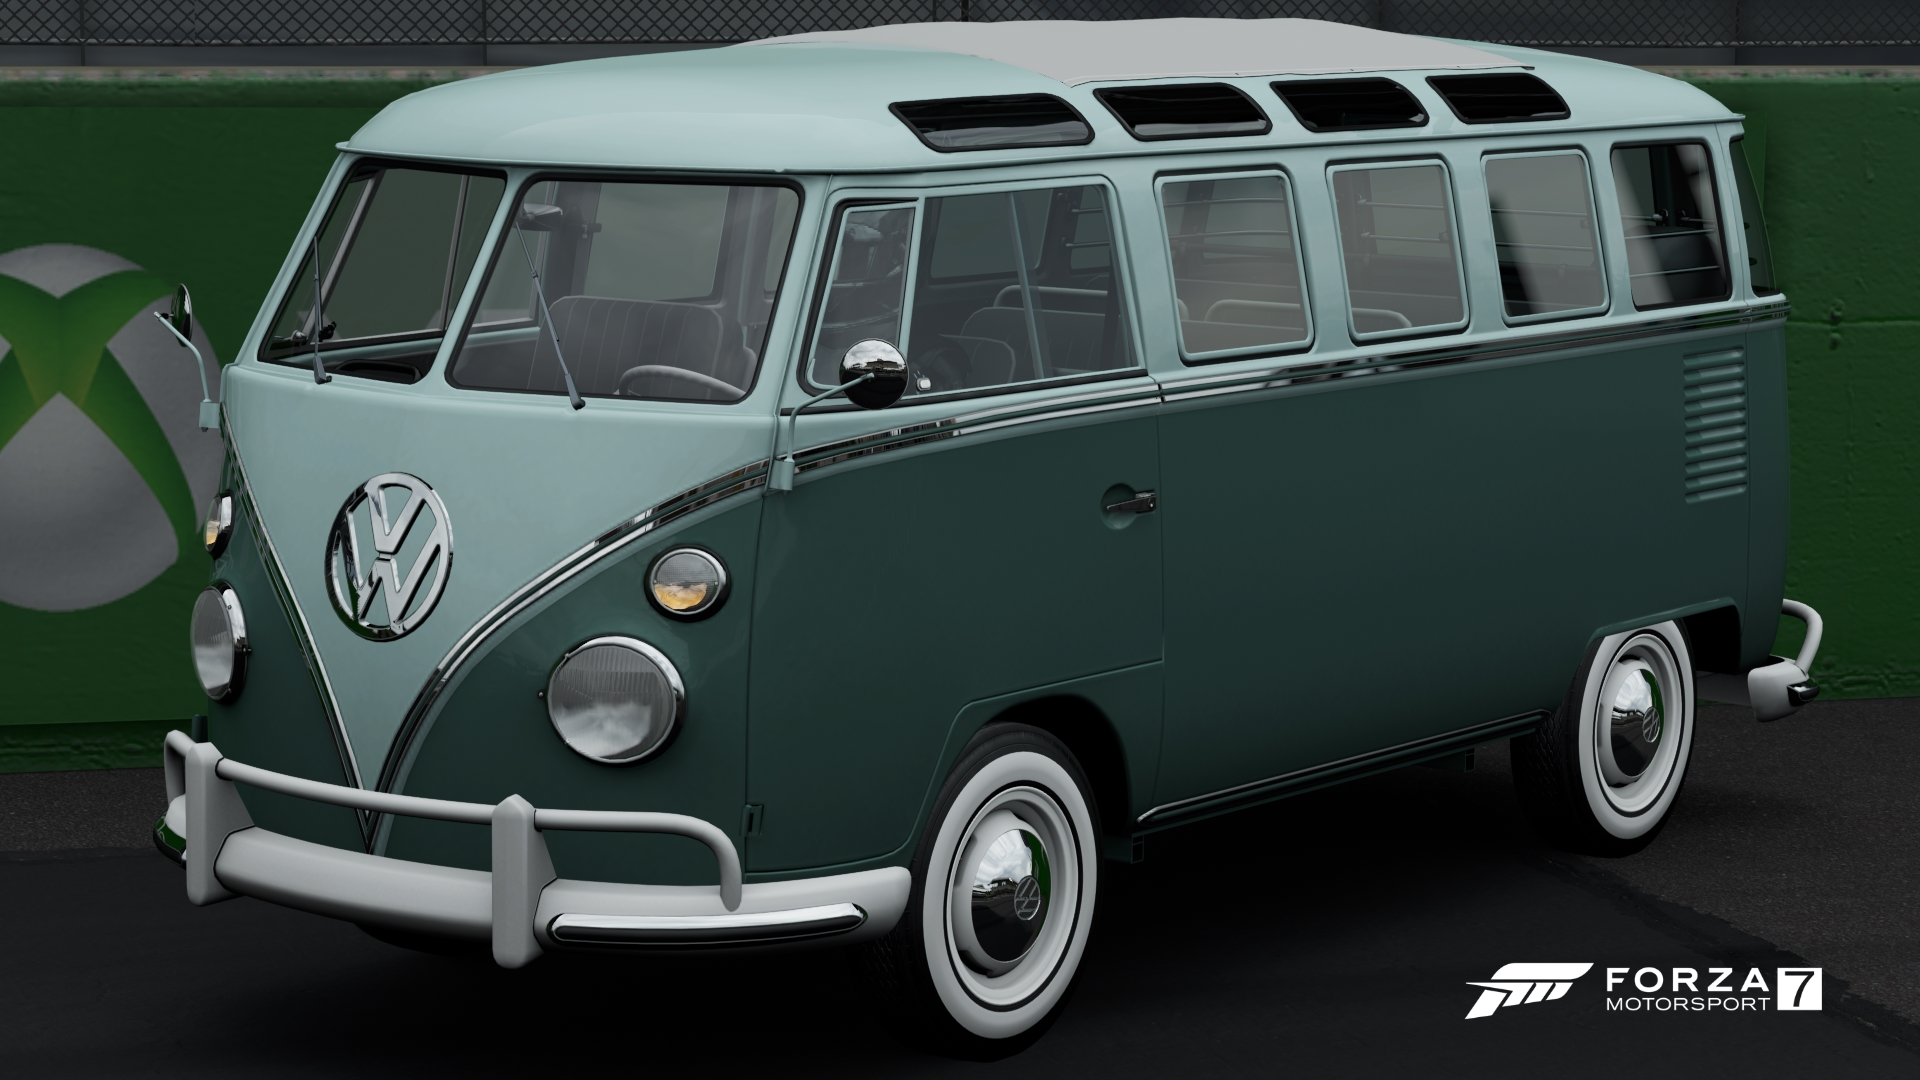 volkswagen type 2 de luxe forza motorsport wiki fandom powered by wikia. Black Bedroom Furniture Sets. Home Design Ideas